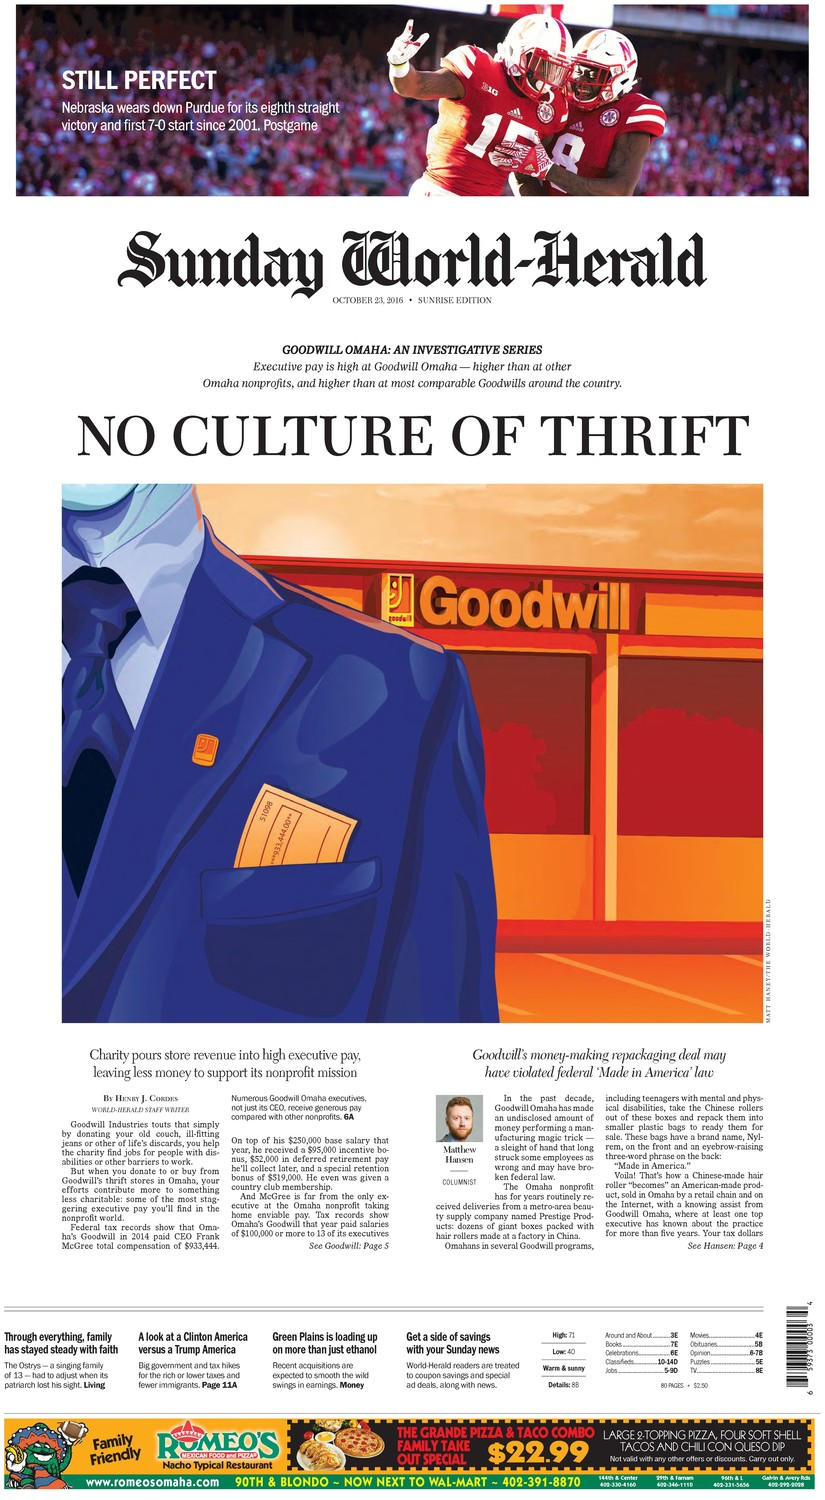 This bold design, showcasing the first in an investigative series of articles about Goodwill Industries' Omaha branch, won first place for the Omaha World-Herald in the largest circulation category